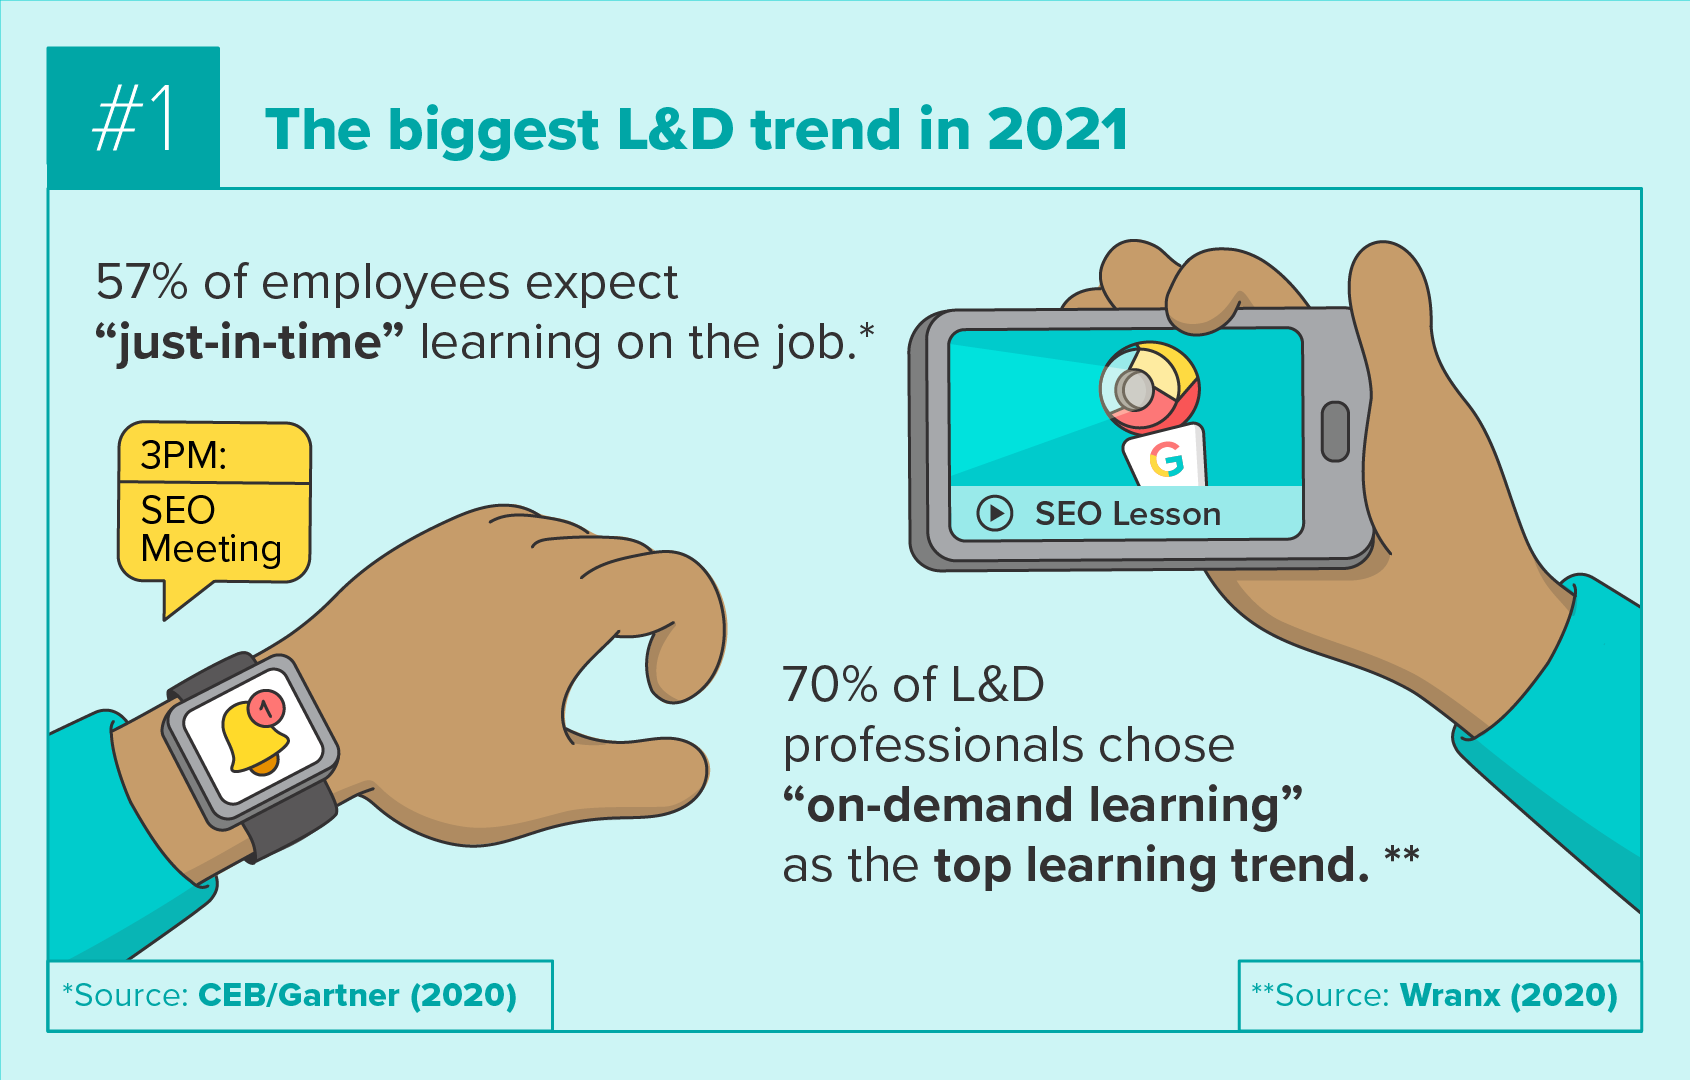 The biggest L&D Trend in 2021